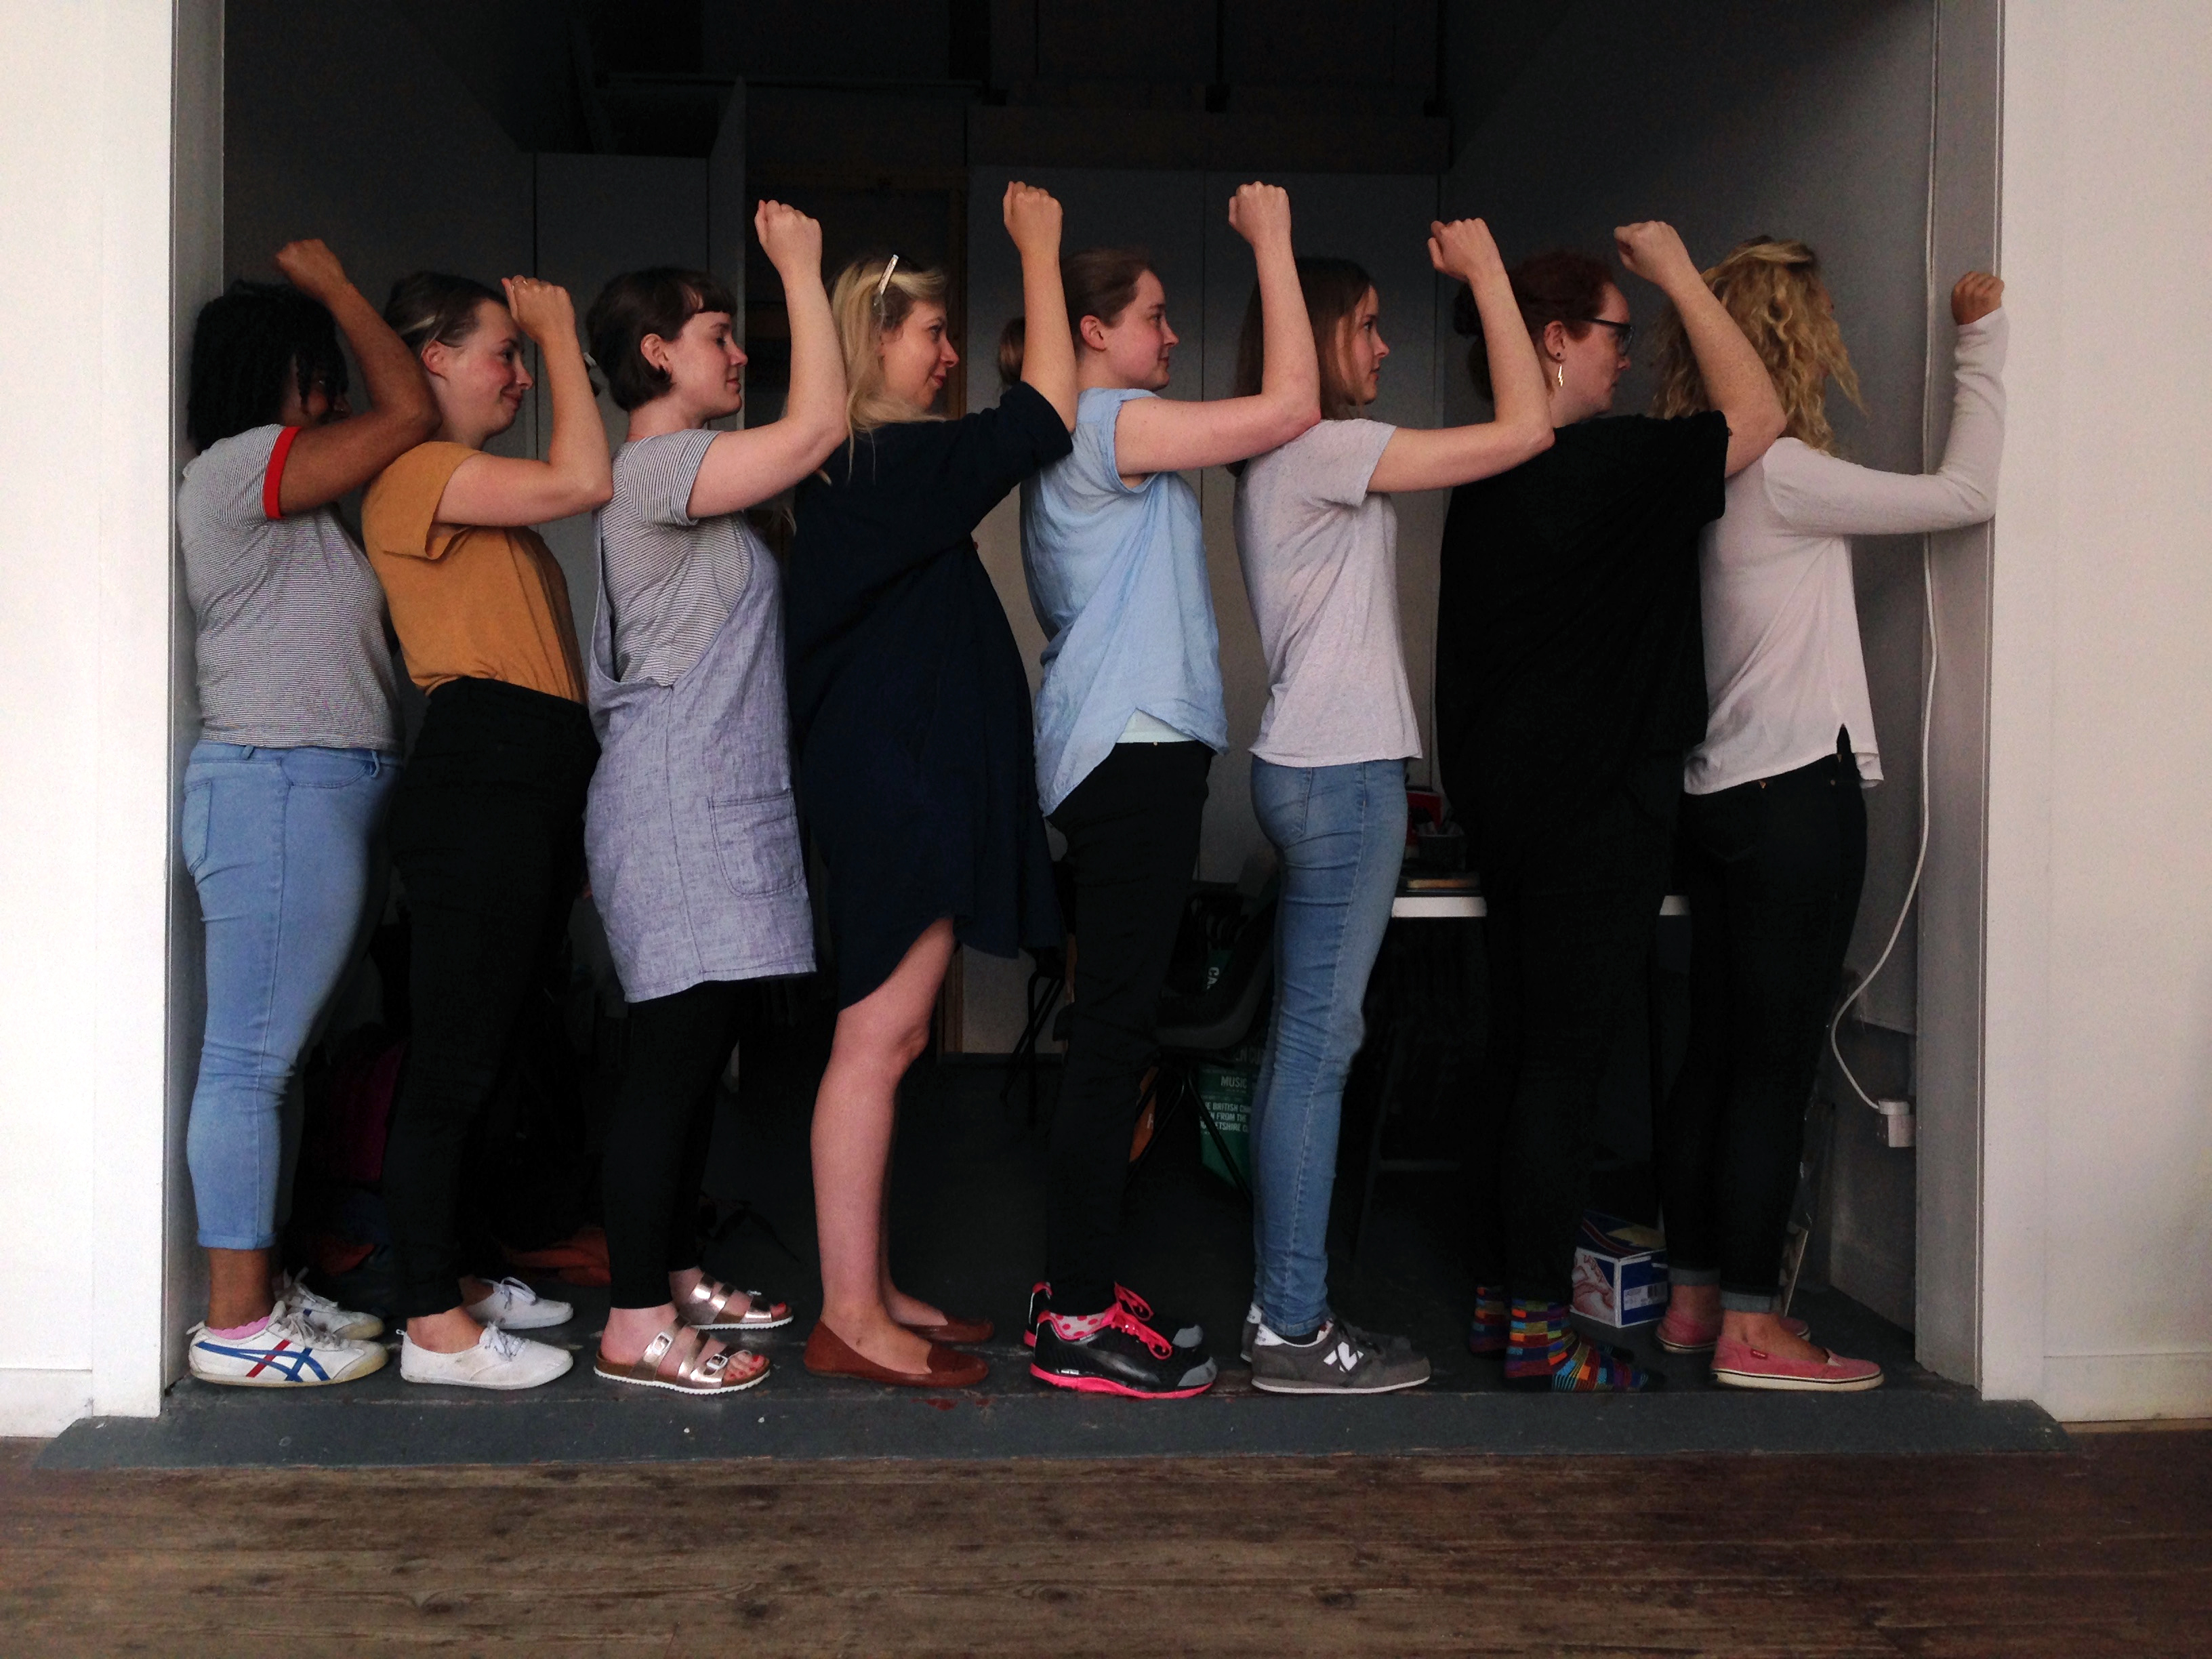 eight women stand facing the right side of the frame each with their elbow on the person in front's shoulder. Together, they fill the space between two walls.